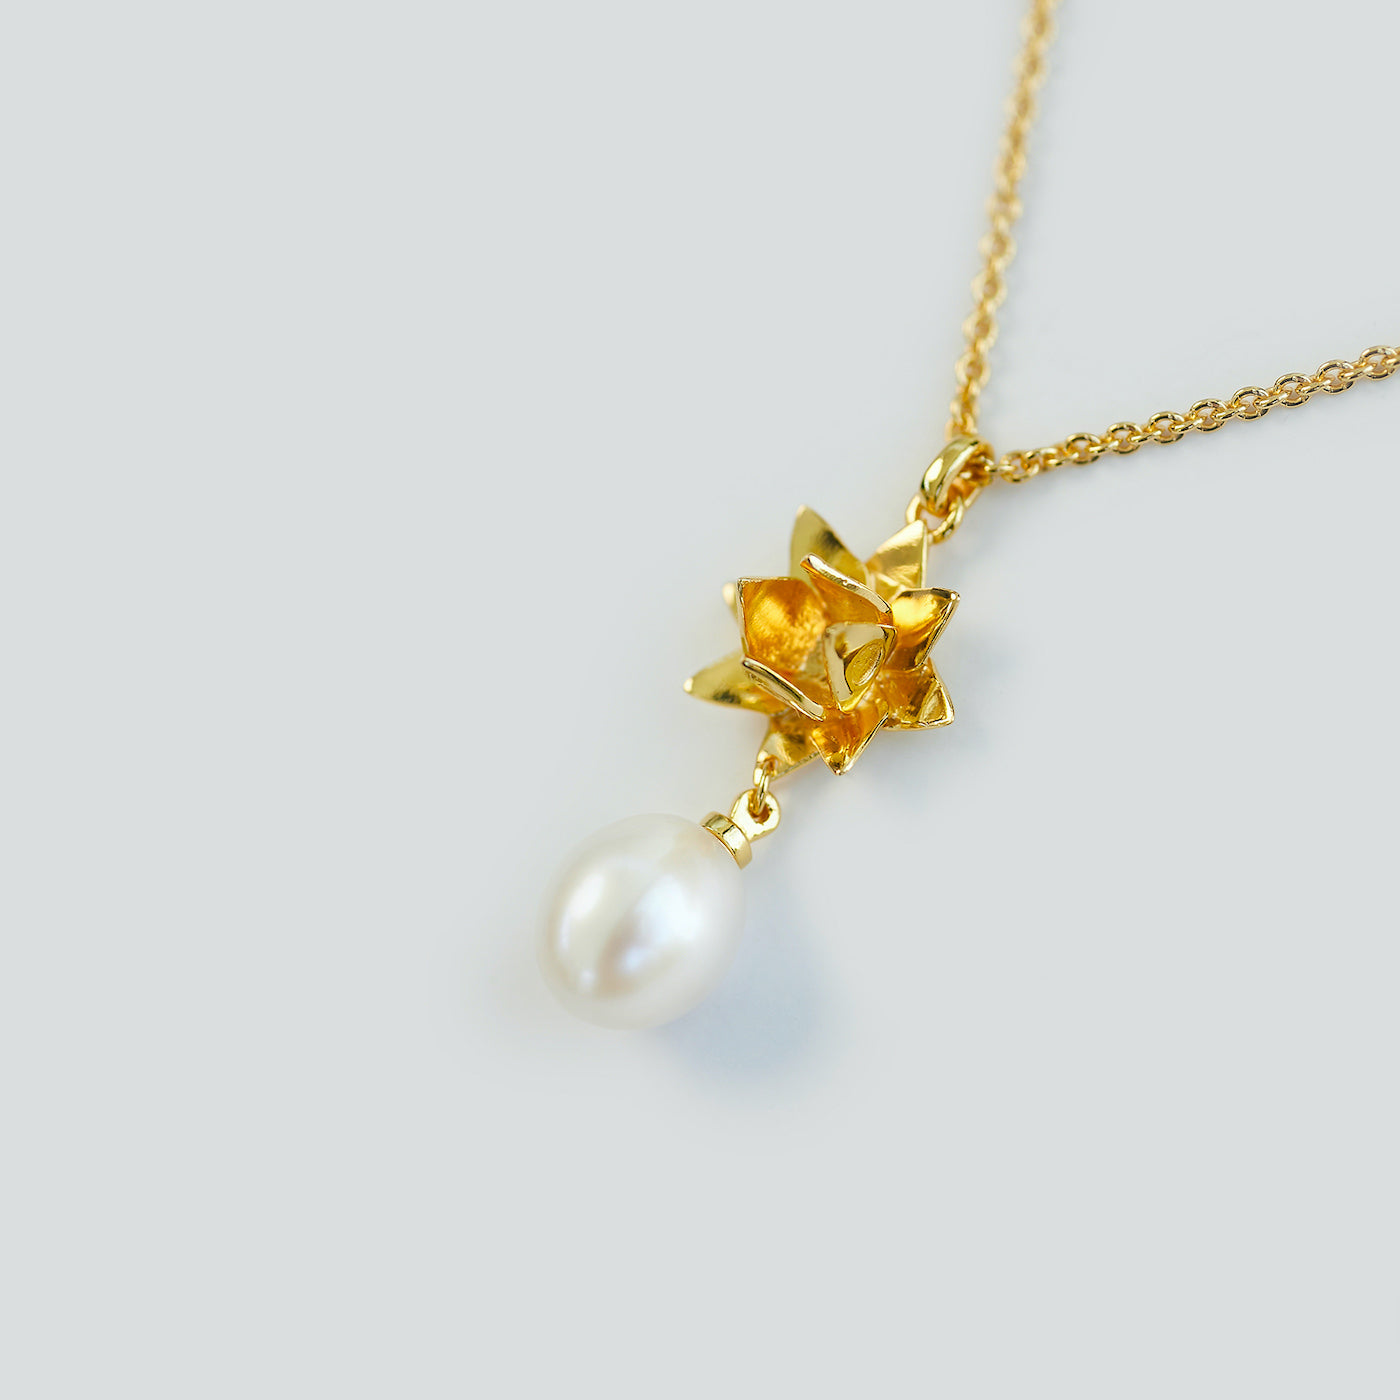 Close up of 18K gold vermeil lotus Pearl pendant by Brave Edith on white background